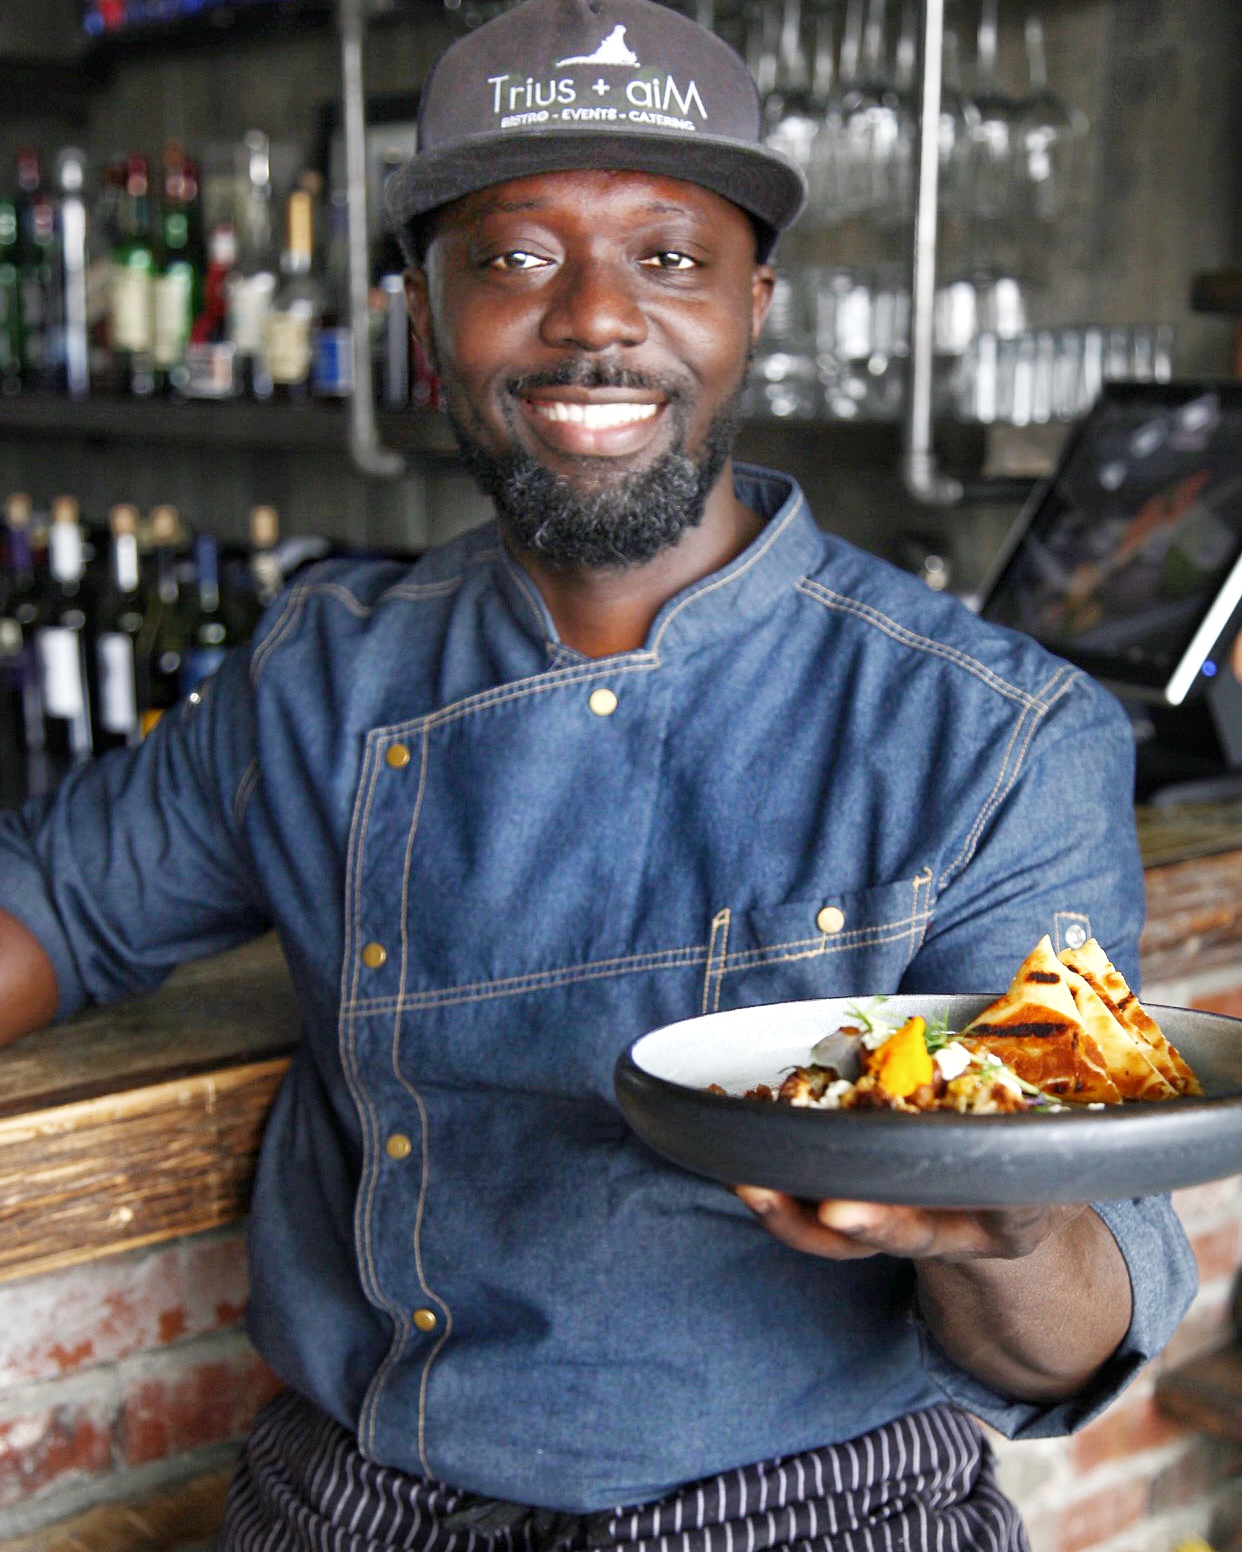 Meet the Chef! - Chef Daniel AnsuPassionate. Authentic. Creative. Talented. Kind, Chef Daniel Ansu has over 15 years experience in some of Toronto's and Ottawa's high-end restaurants. Originally from Ghana, Africa, he enjoys combining bold flavours from around the world to create a unique menu. Most importantly, Chef Daniel is a proud father of three, who inspired the Trius + aiM endeavour.